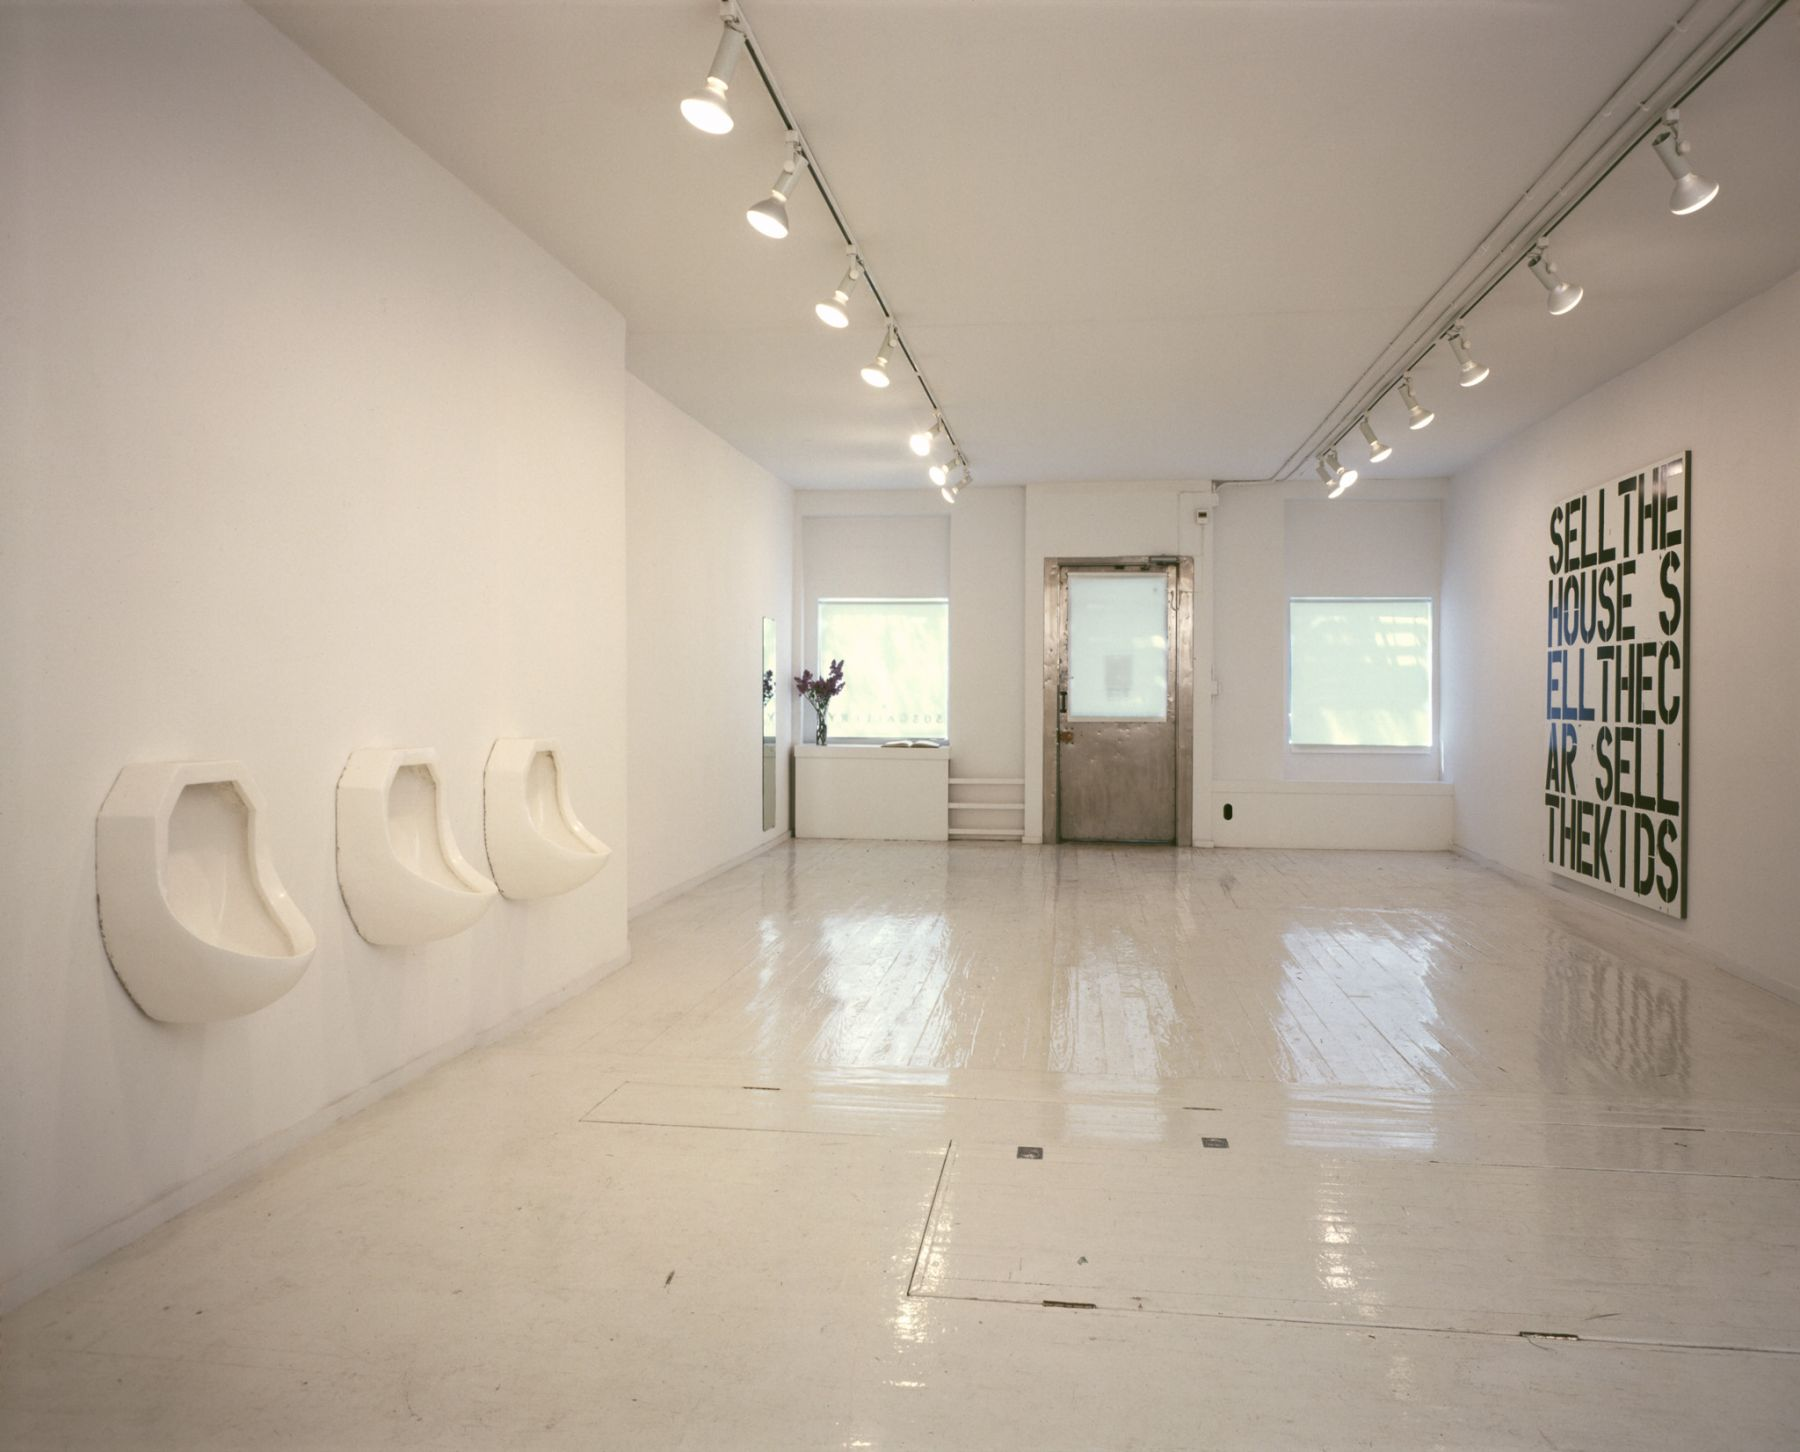 Installation view, Robert Gober and Christopher Wool